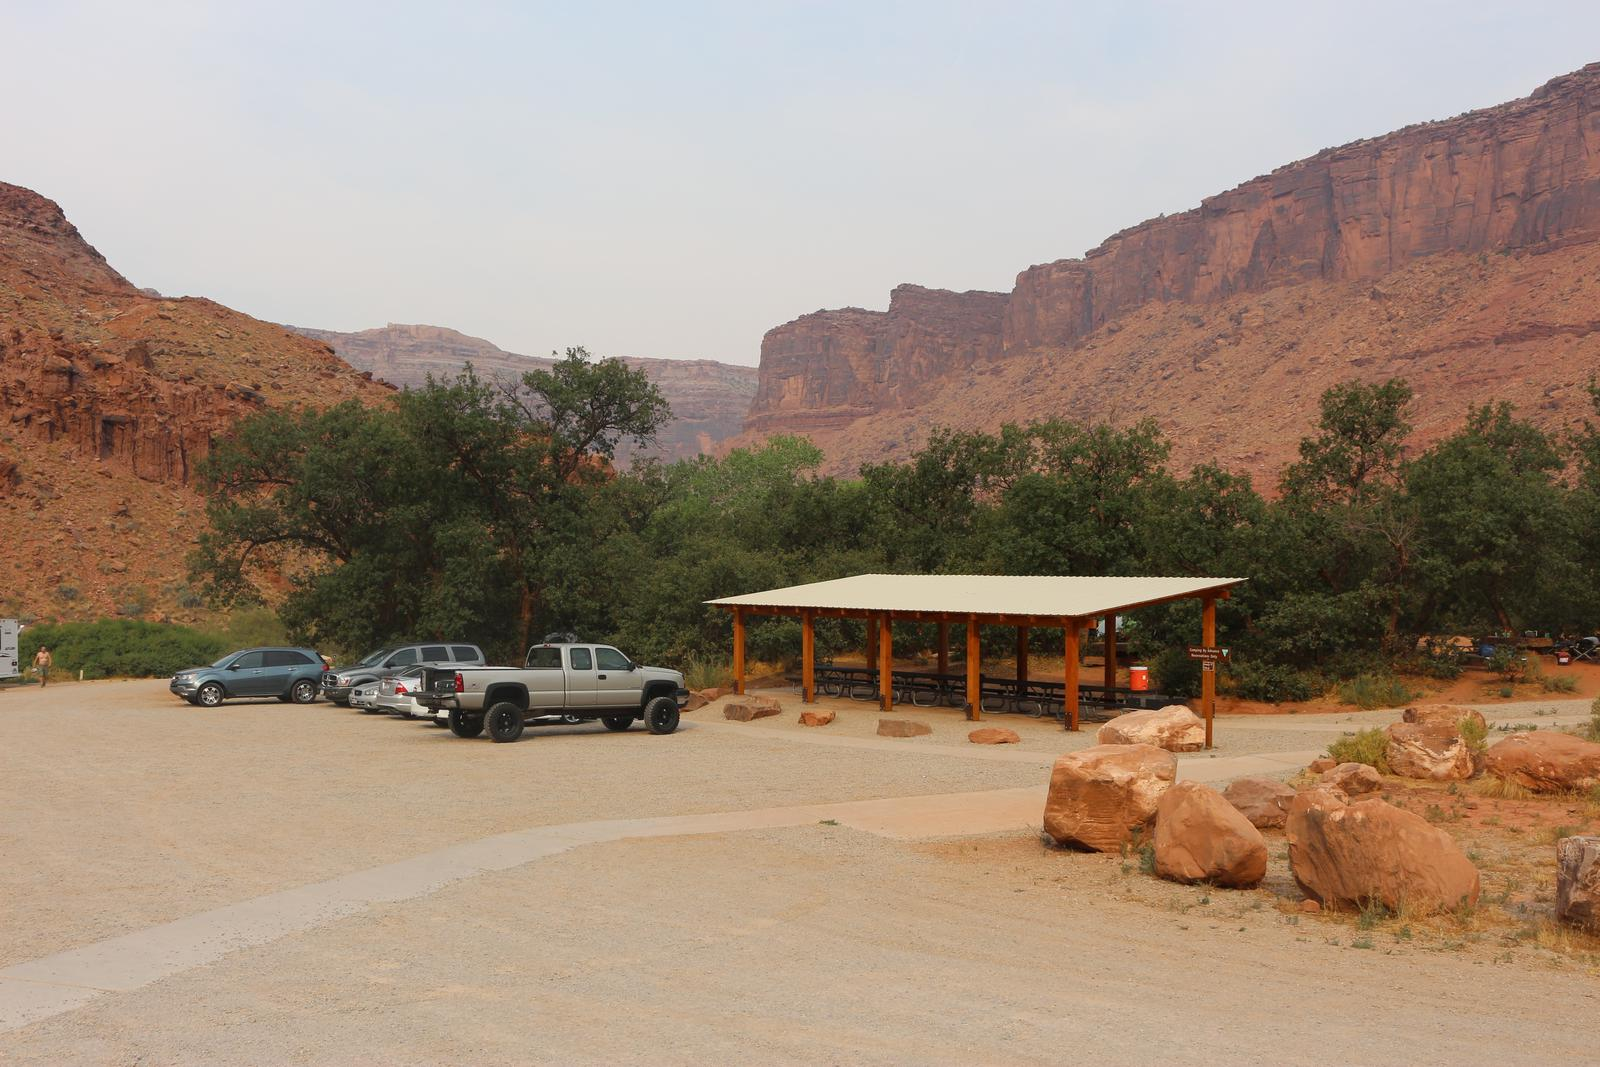 Big Bend Group Site A parking area with six cars parked next to the large shade shelter. Tall, red rock cliffs line the horizon.